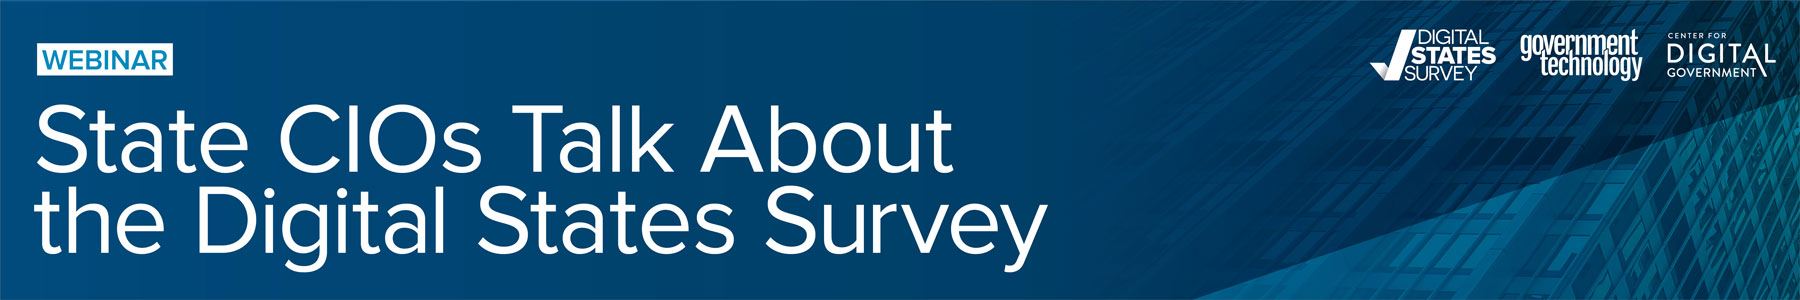 State CIOs Talk About the Digital States Survey